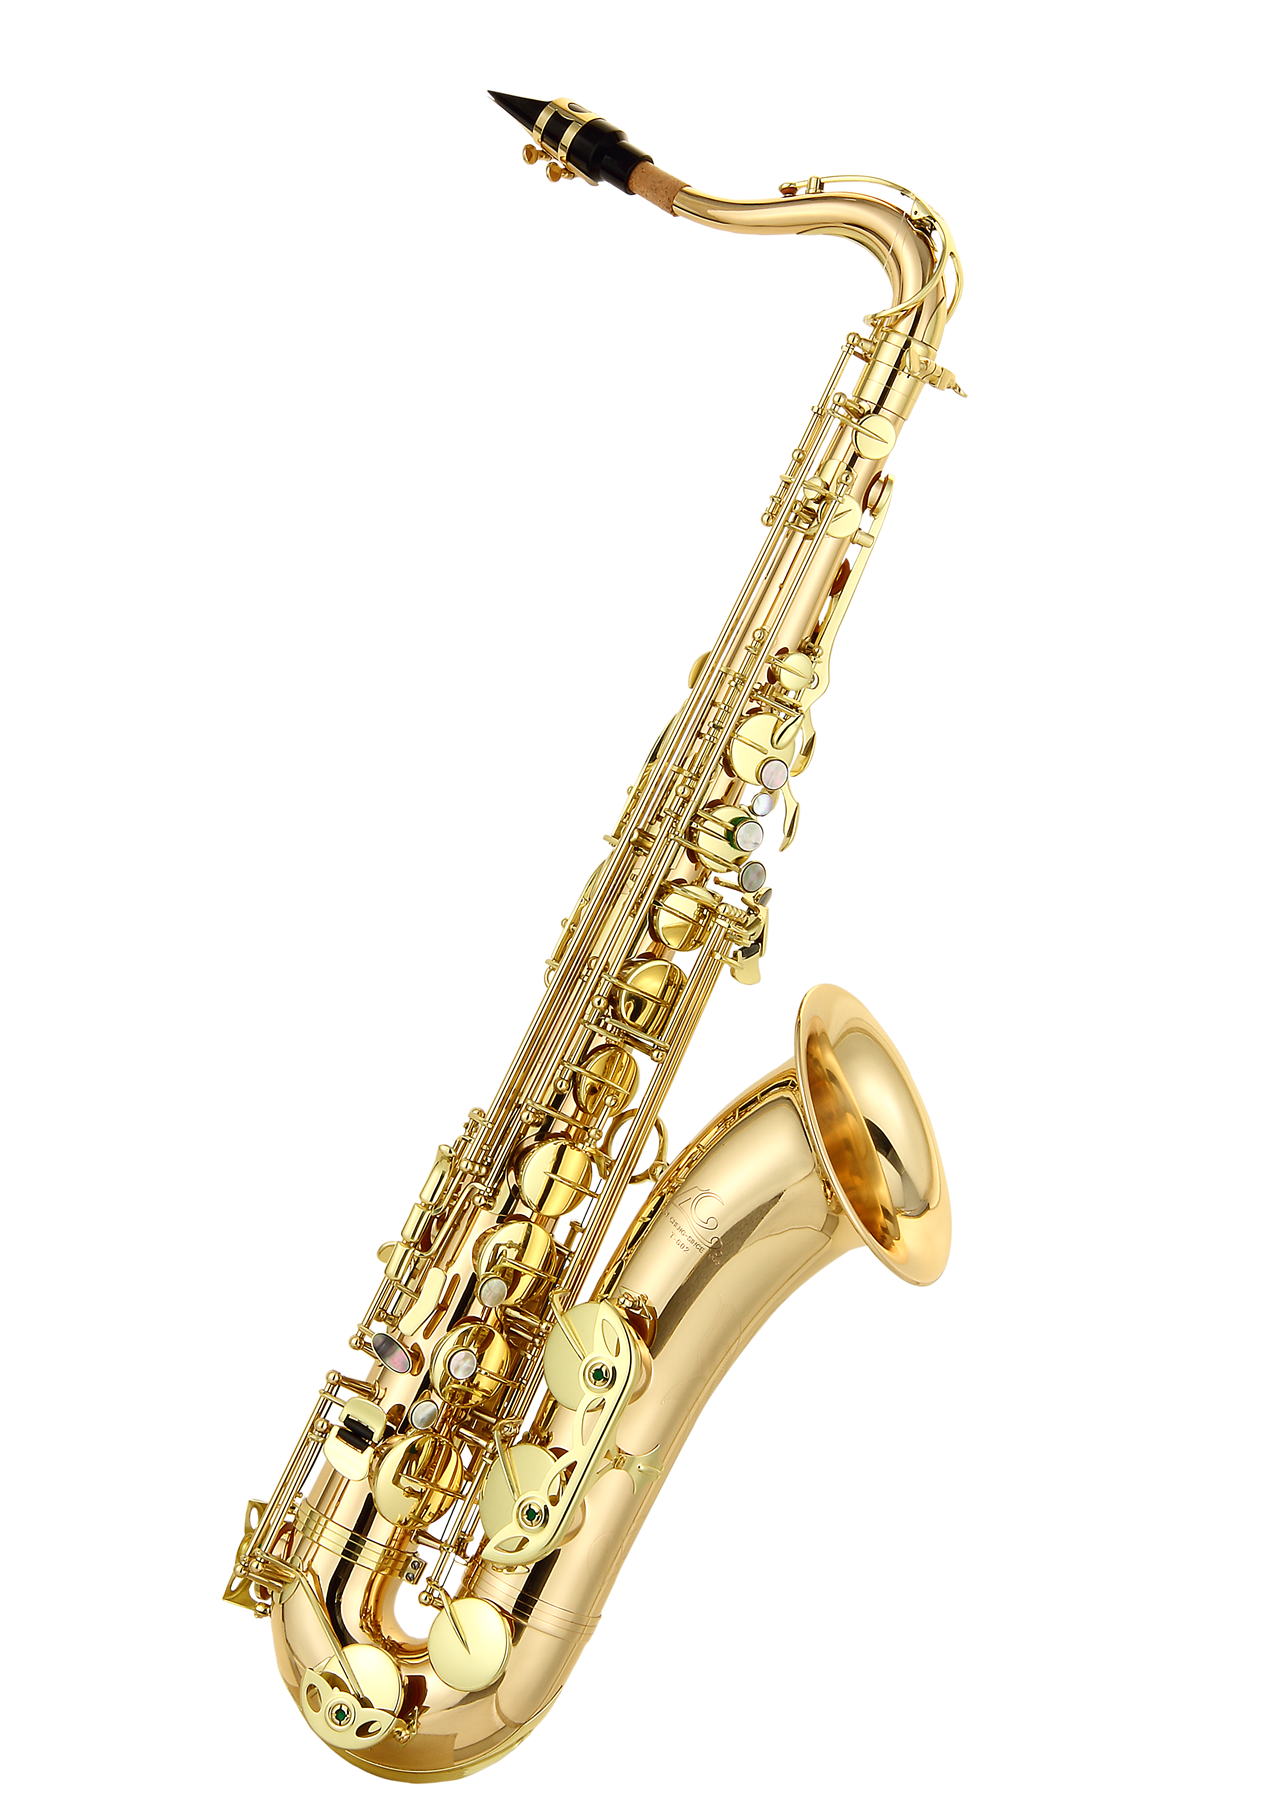 download saxophone png clipart hq png image freepngimg cheetah clip art svg cheetah clip art stencil